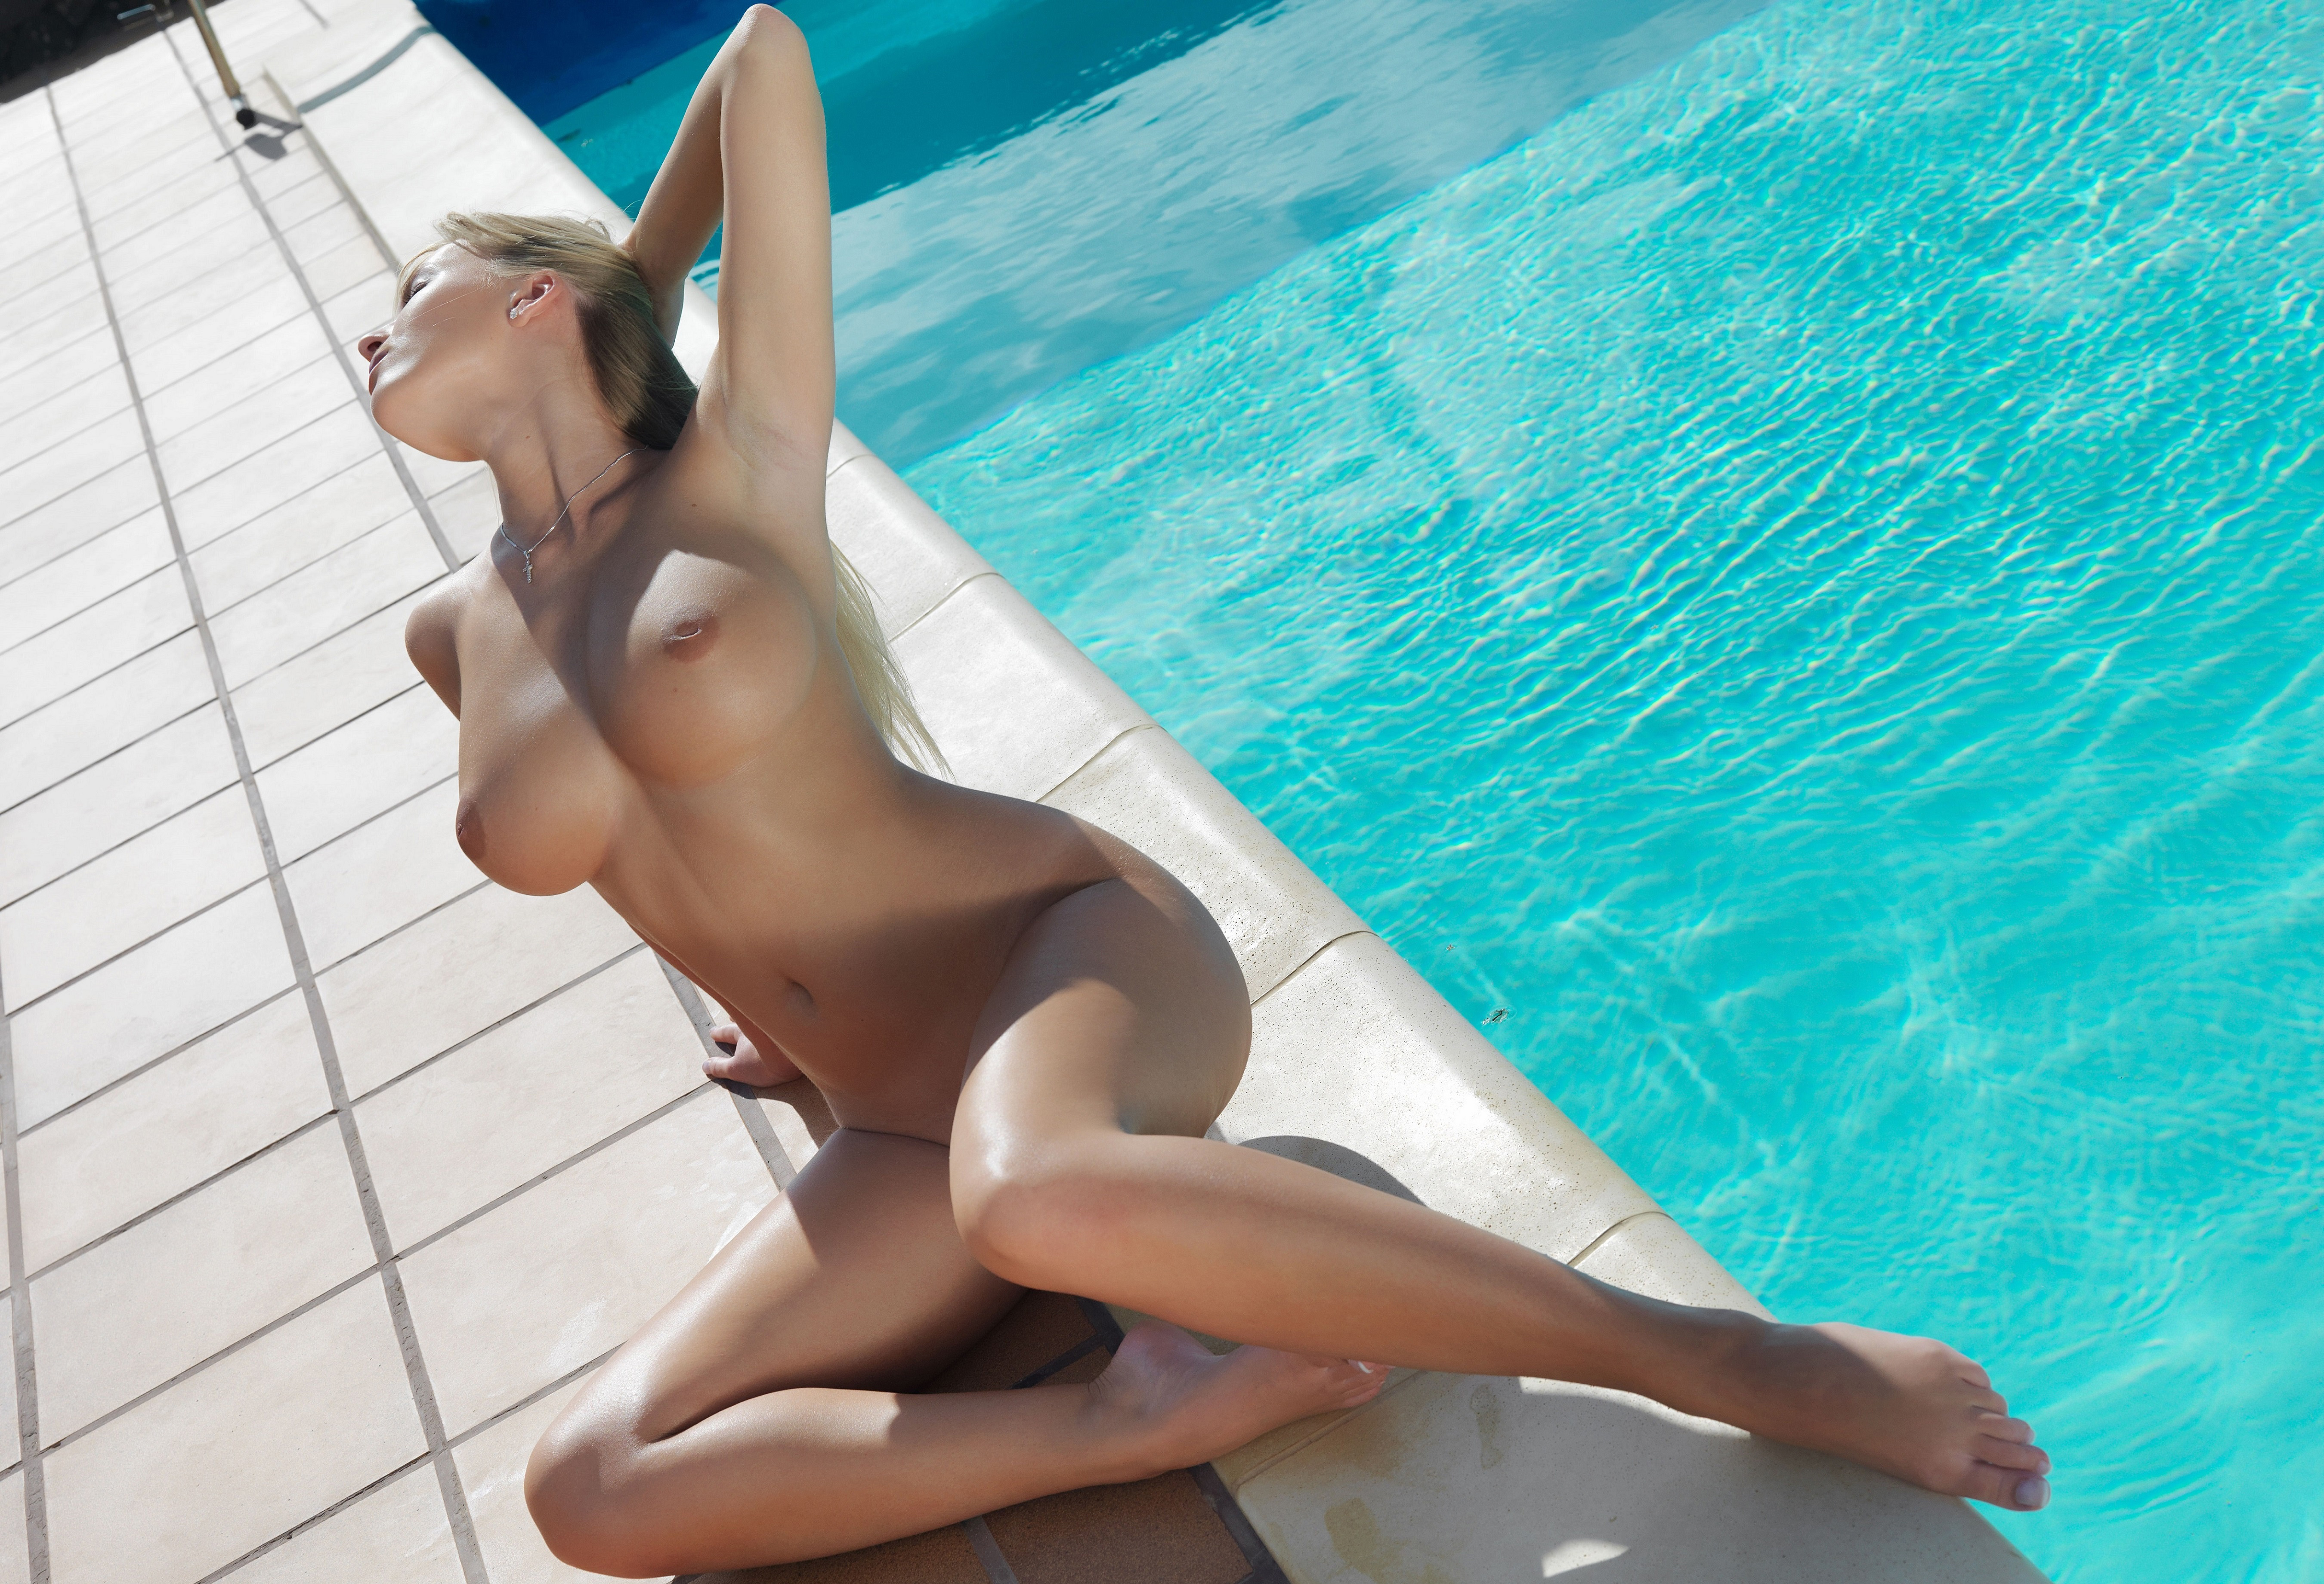 nude-girl-shooting-pool